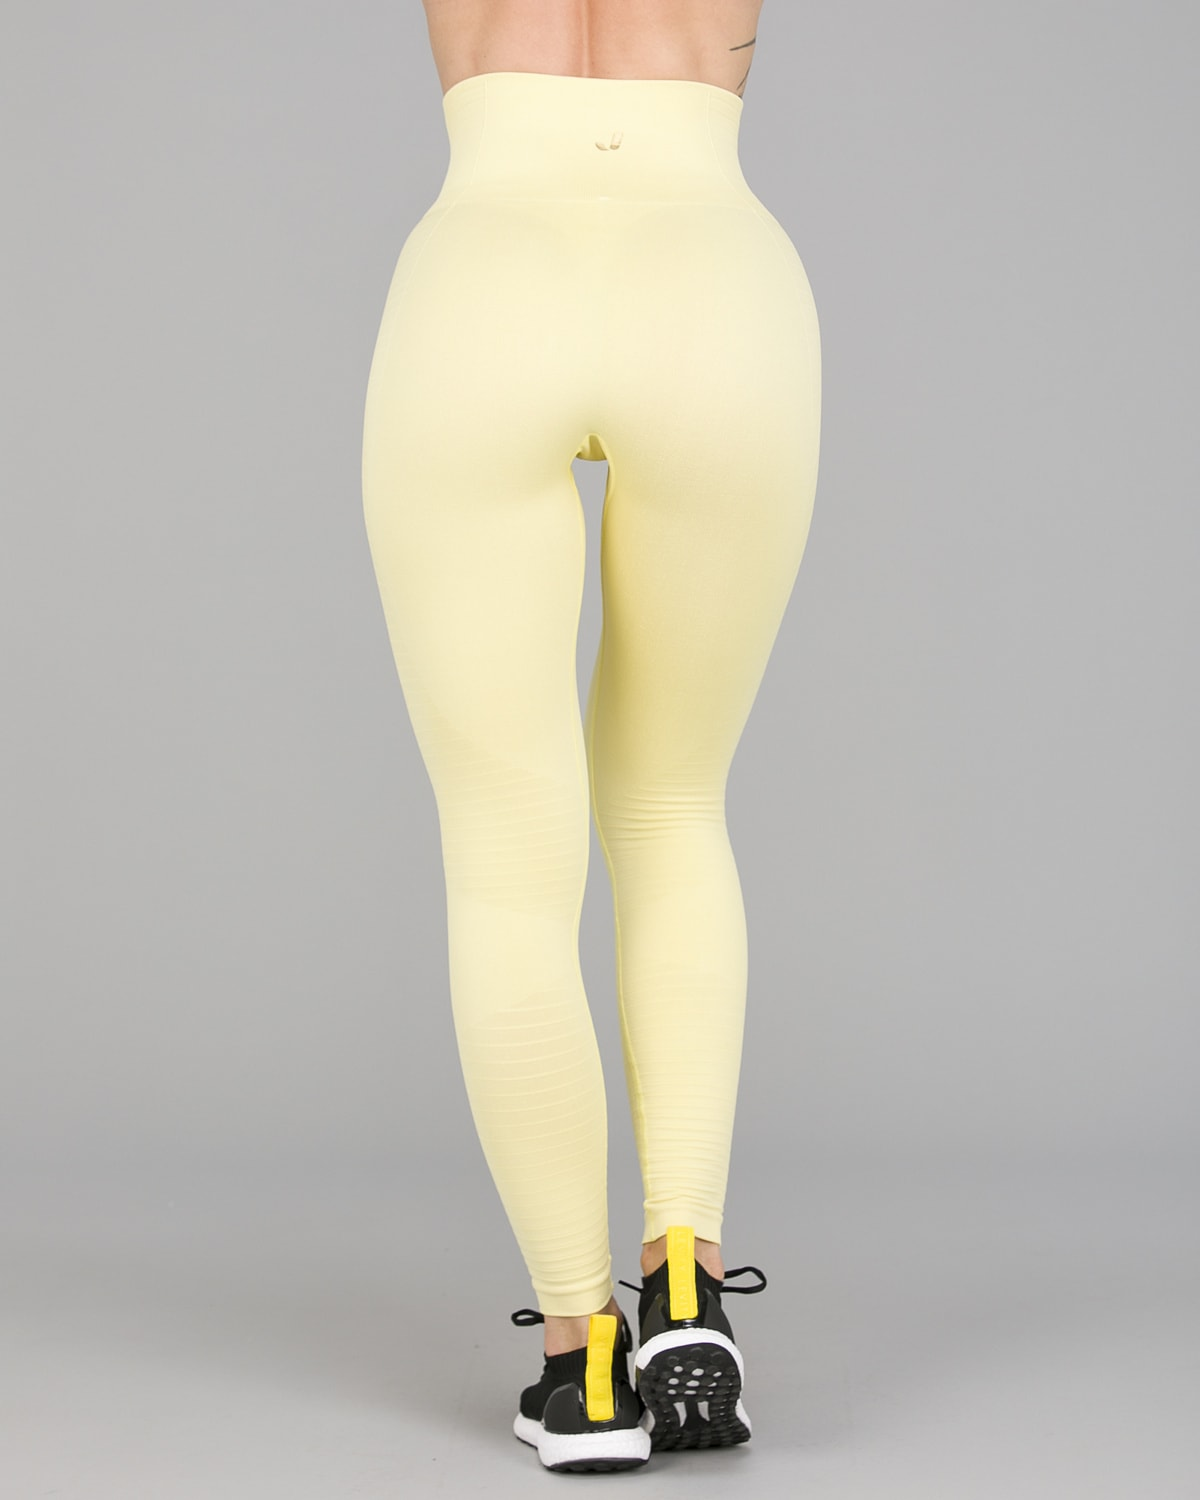 Jerf Gela 2.0 Tights Yellow Pastel12